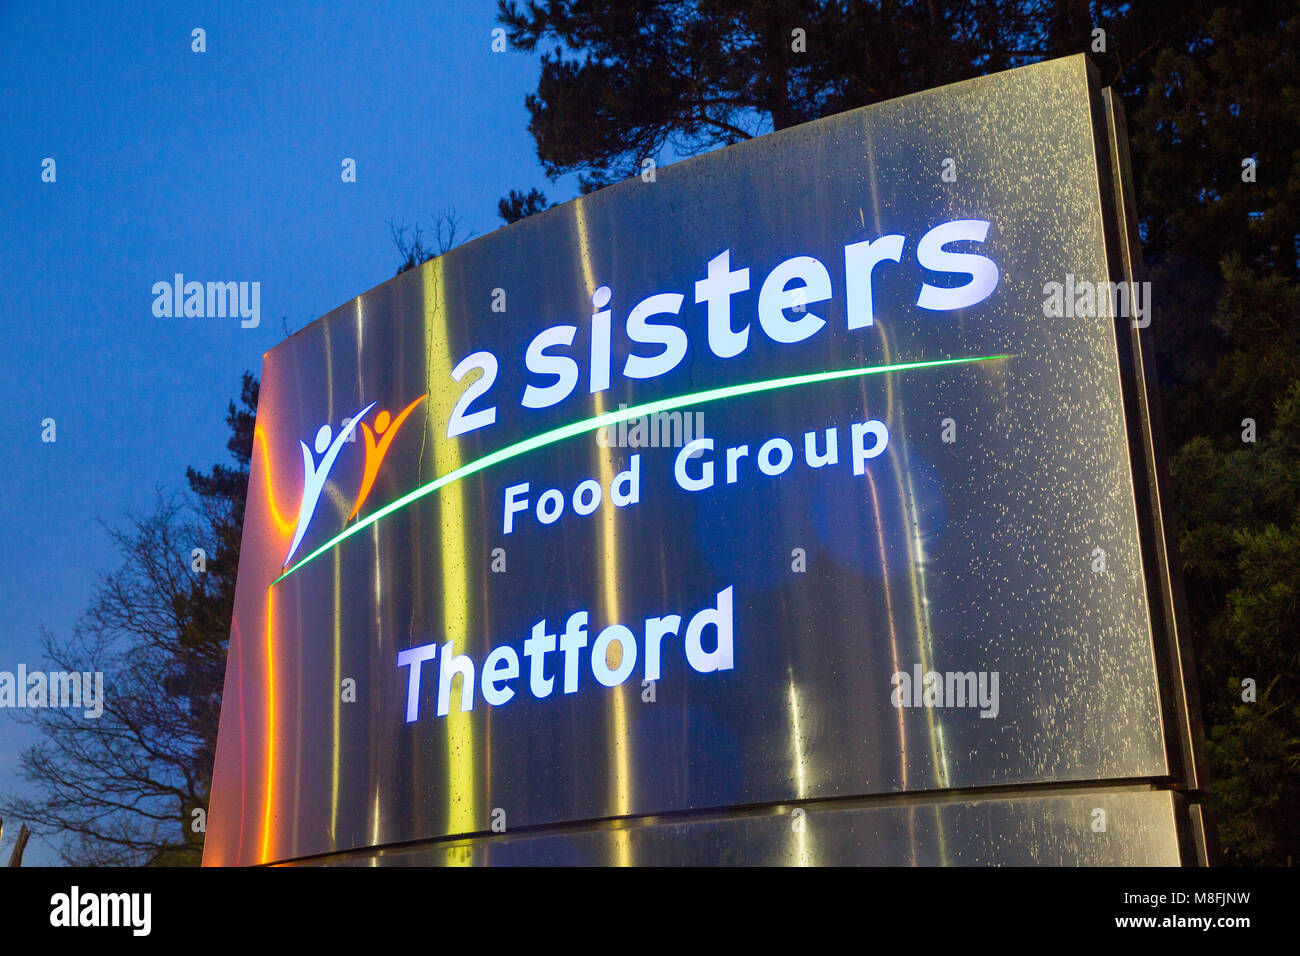 The 2 Sisters Food group factory in Thetford, Norfolk, UK. The factory produces added value meals, mainly from chicken, - Stock Image